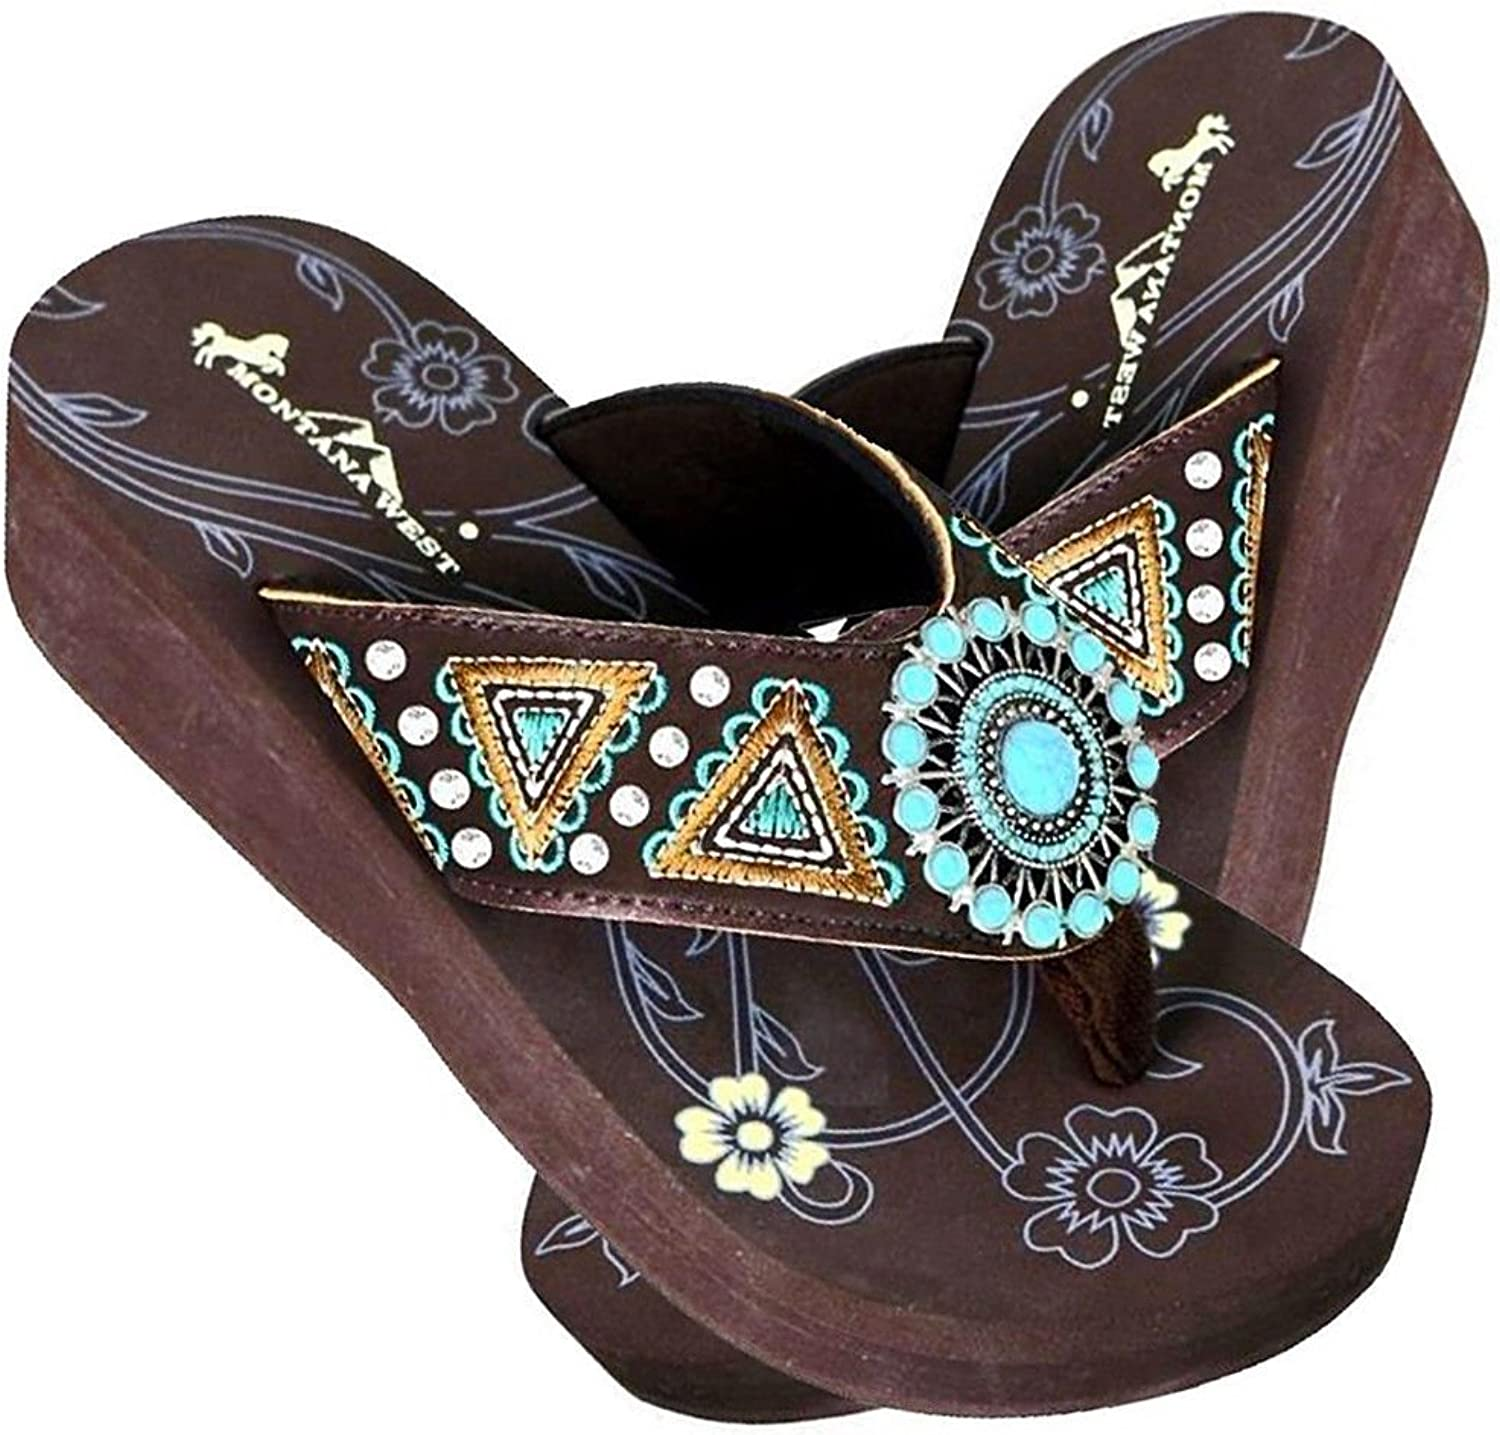 Montana West Embroidered, TQ Center Aztec Wedge Flip Flops - Coffee